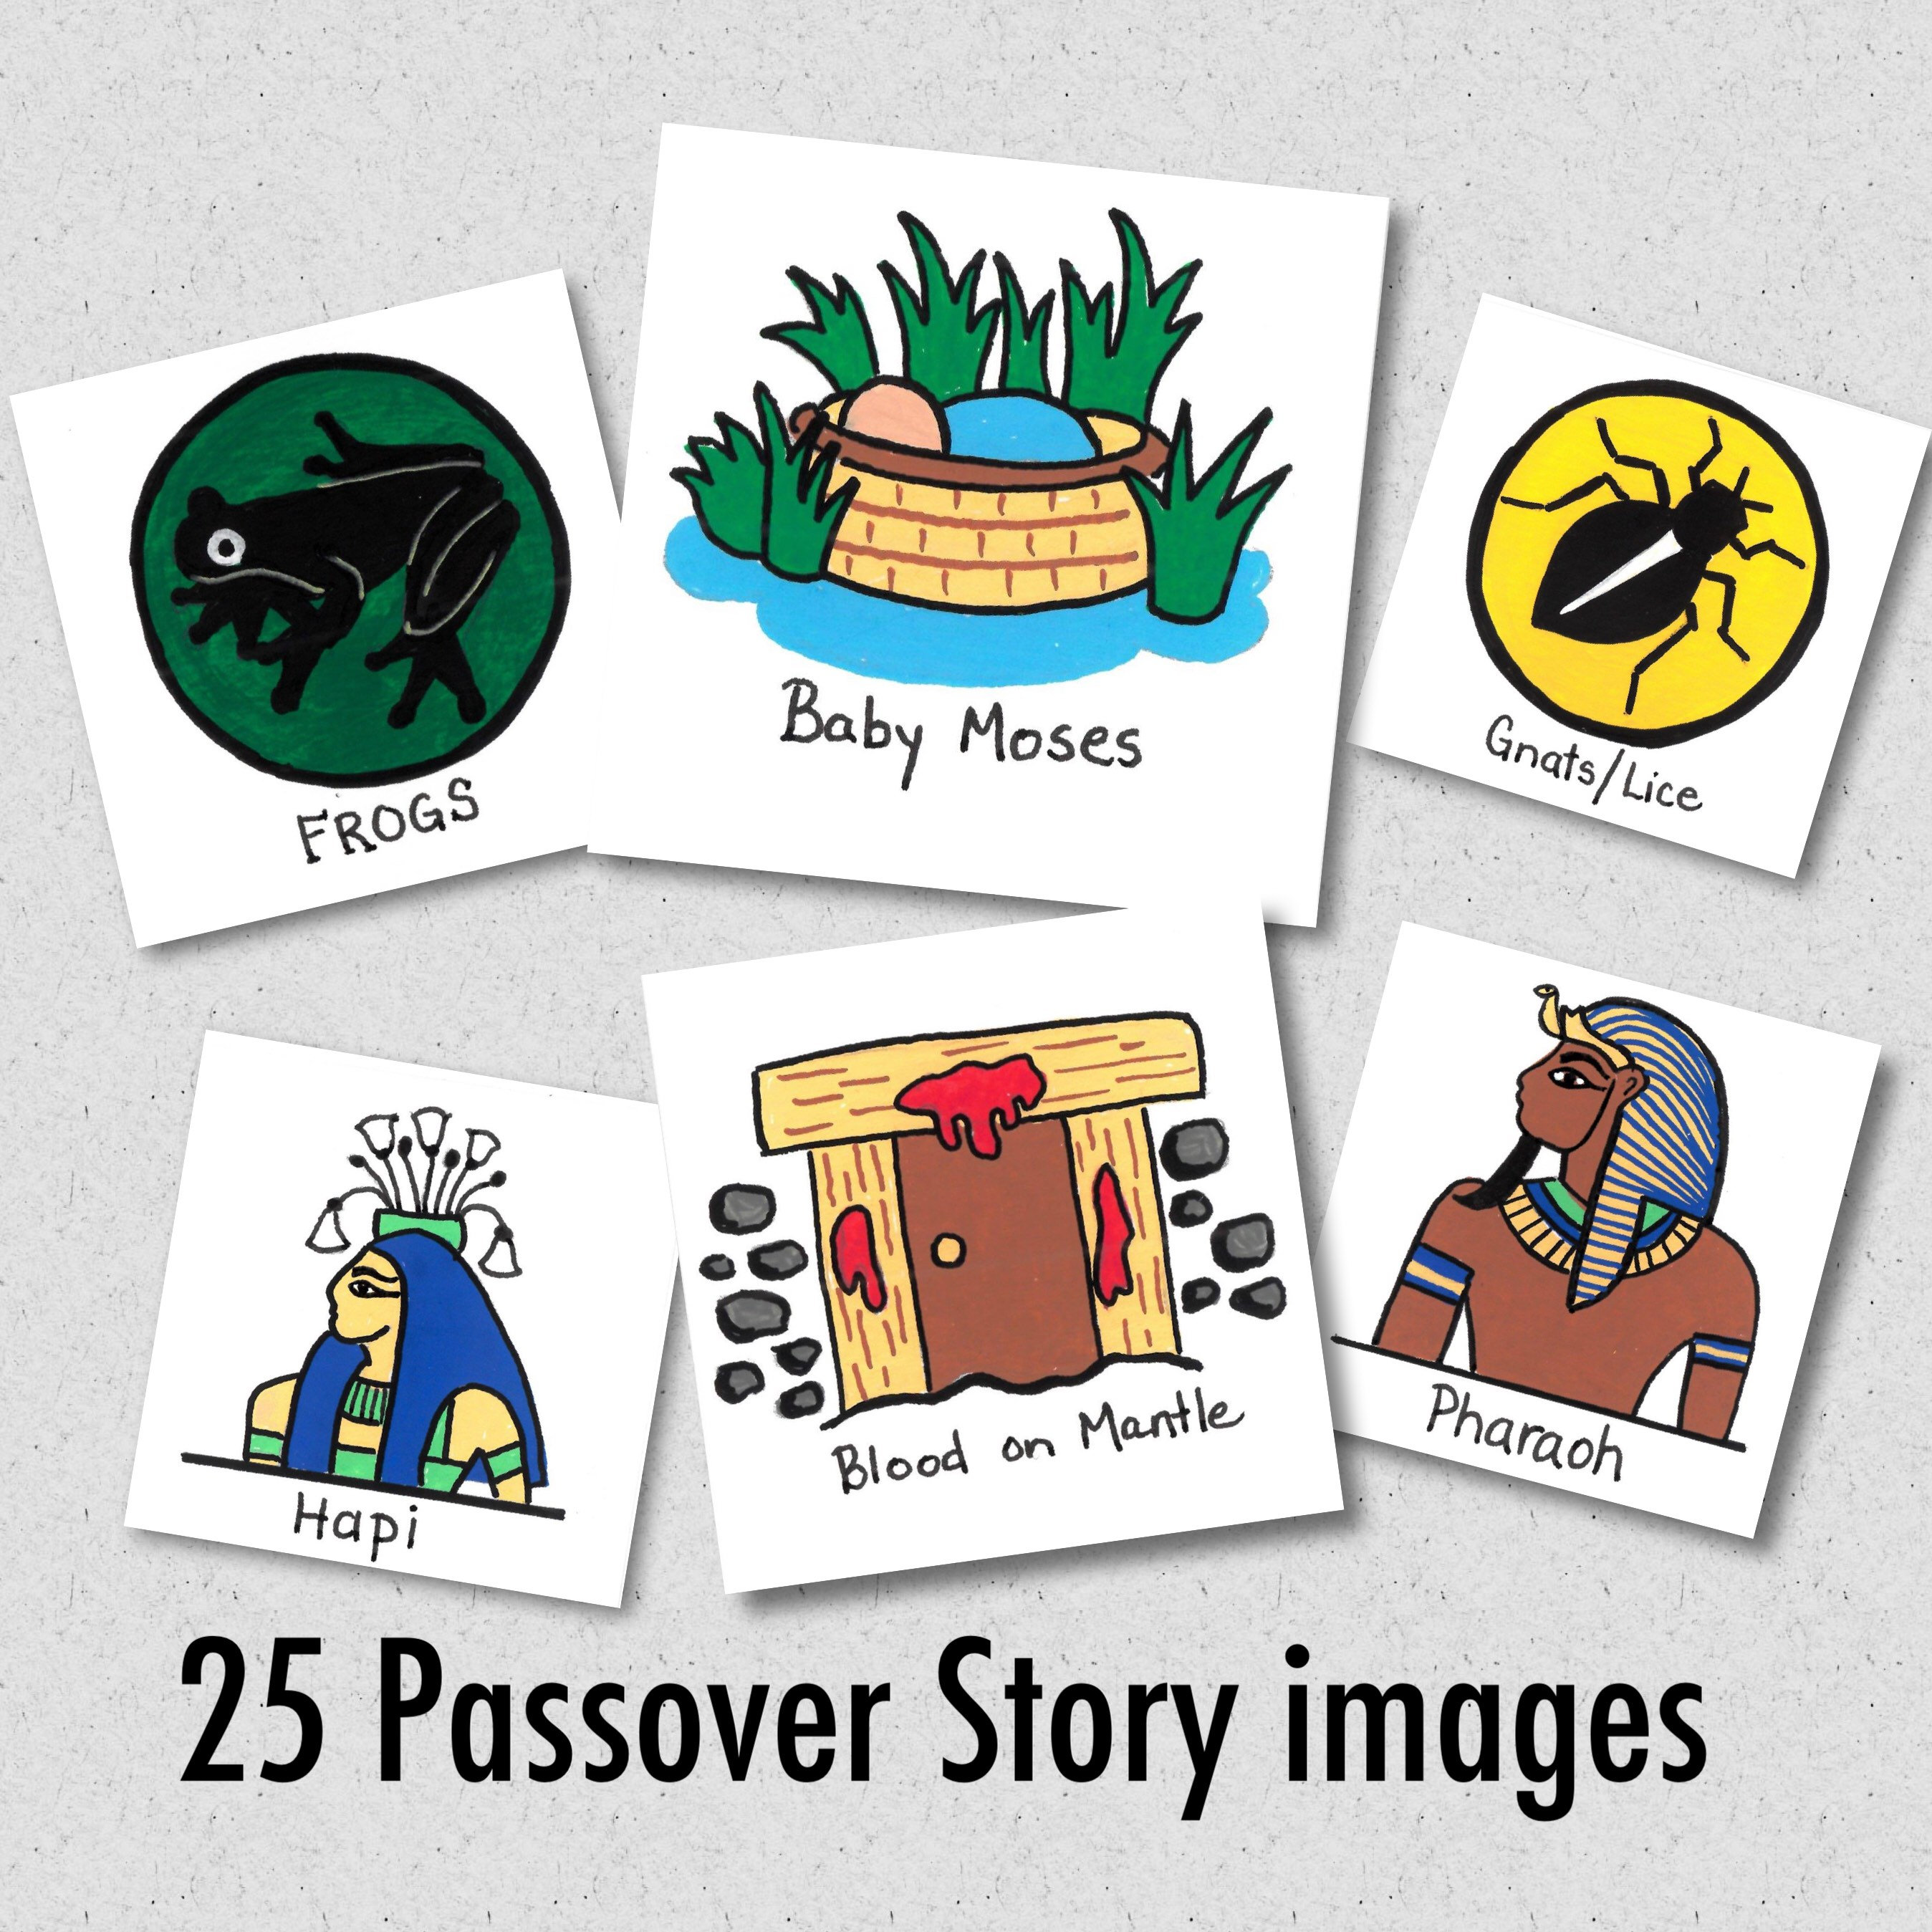 2697x2697 Passover Story Tiles, Passover Seder Meal Images